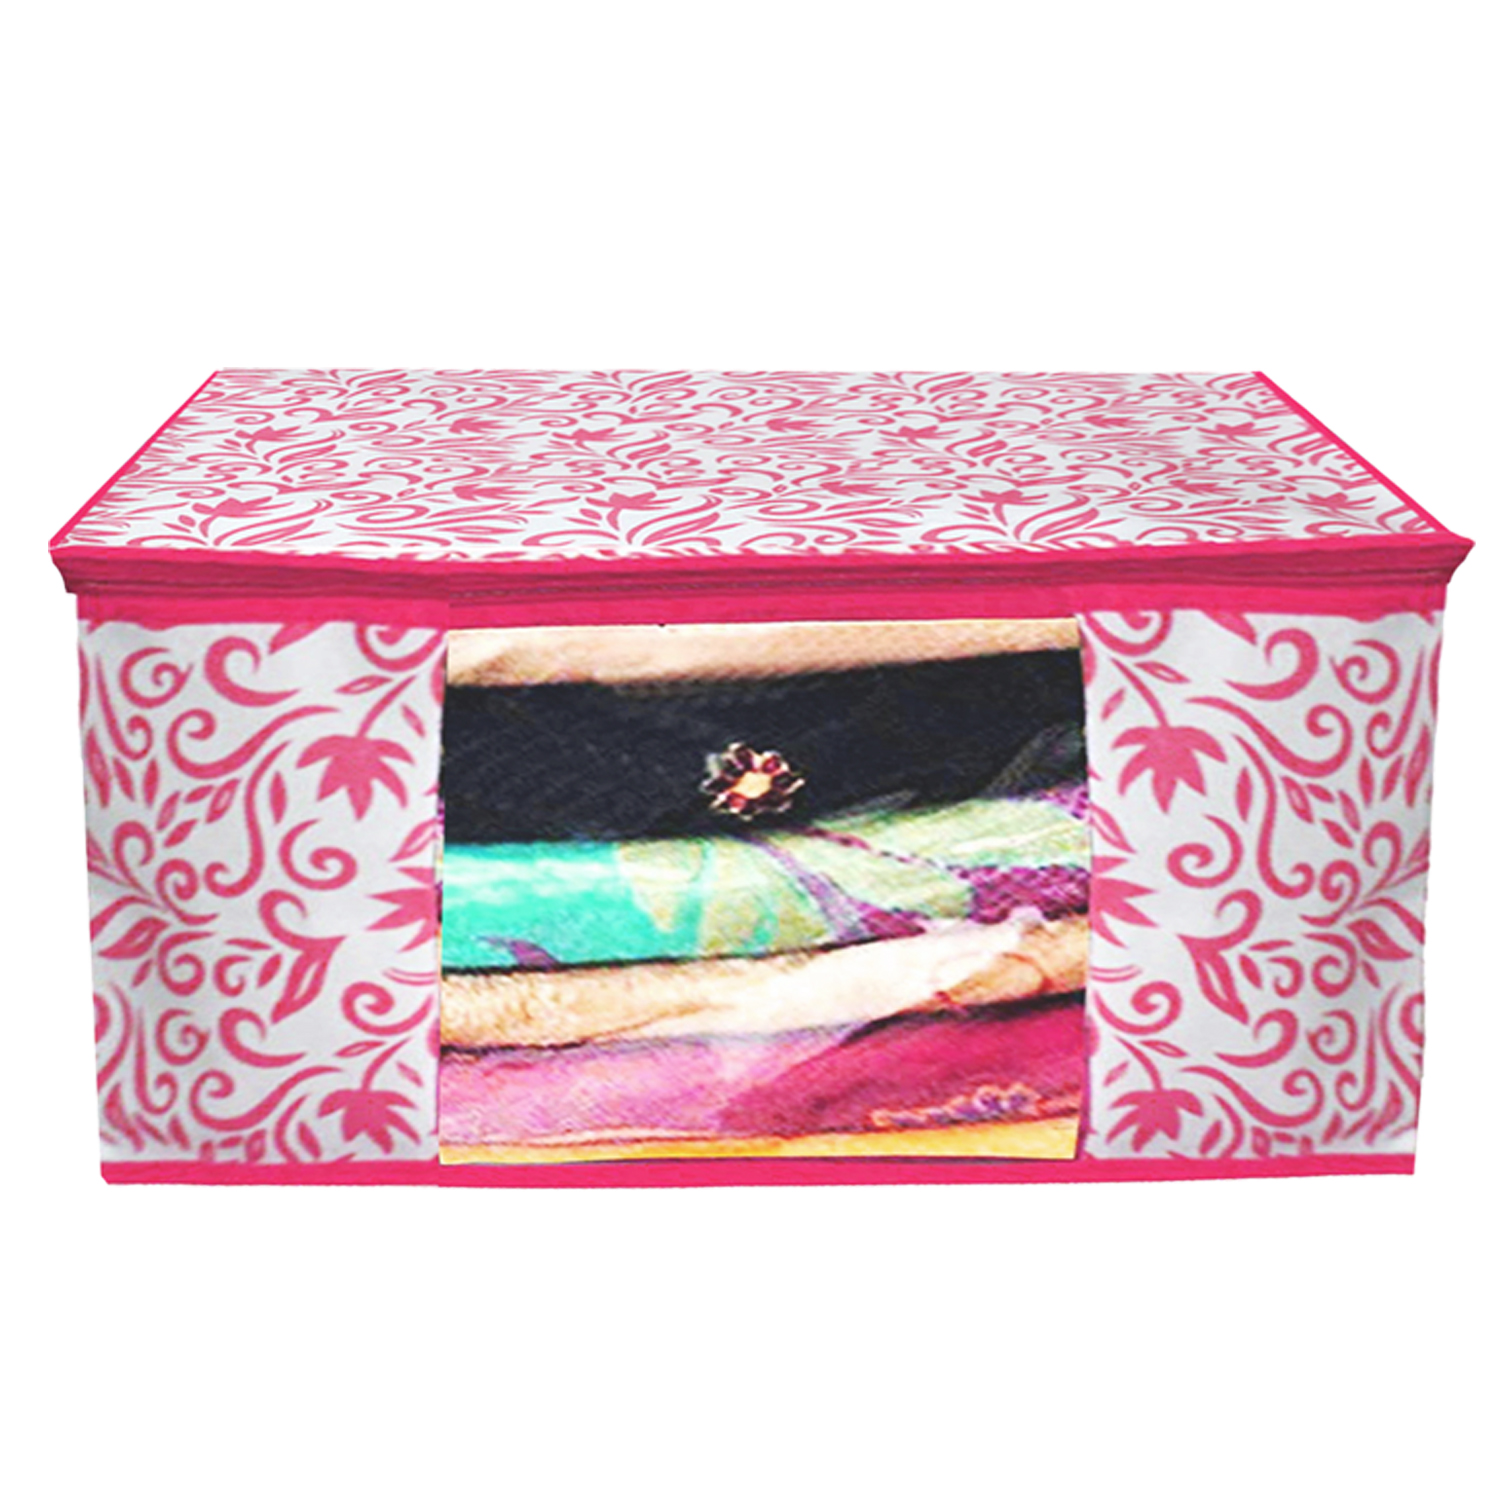 Kuber Industries Leaf Design Non Woven 2 Pieces Saree Cover And 2 Pieces Underbed Storage Bag, Cloth Organizer For Storage, Blanket Cover Combo Set (Pink) -CTKTC38656